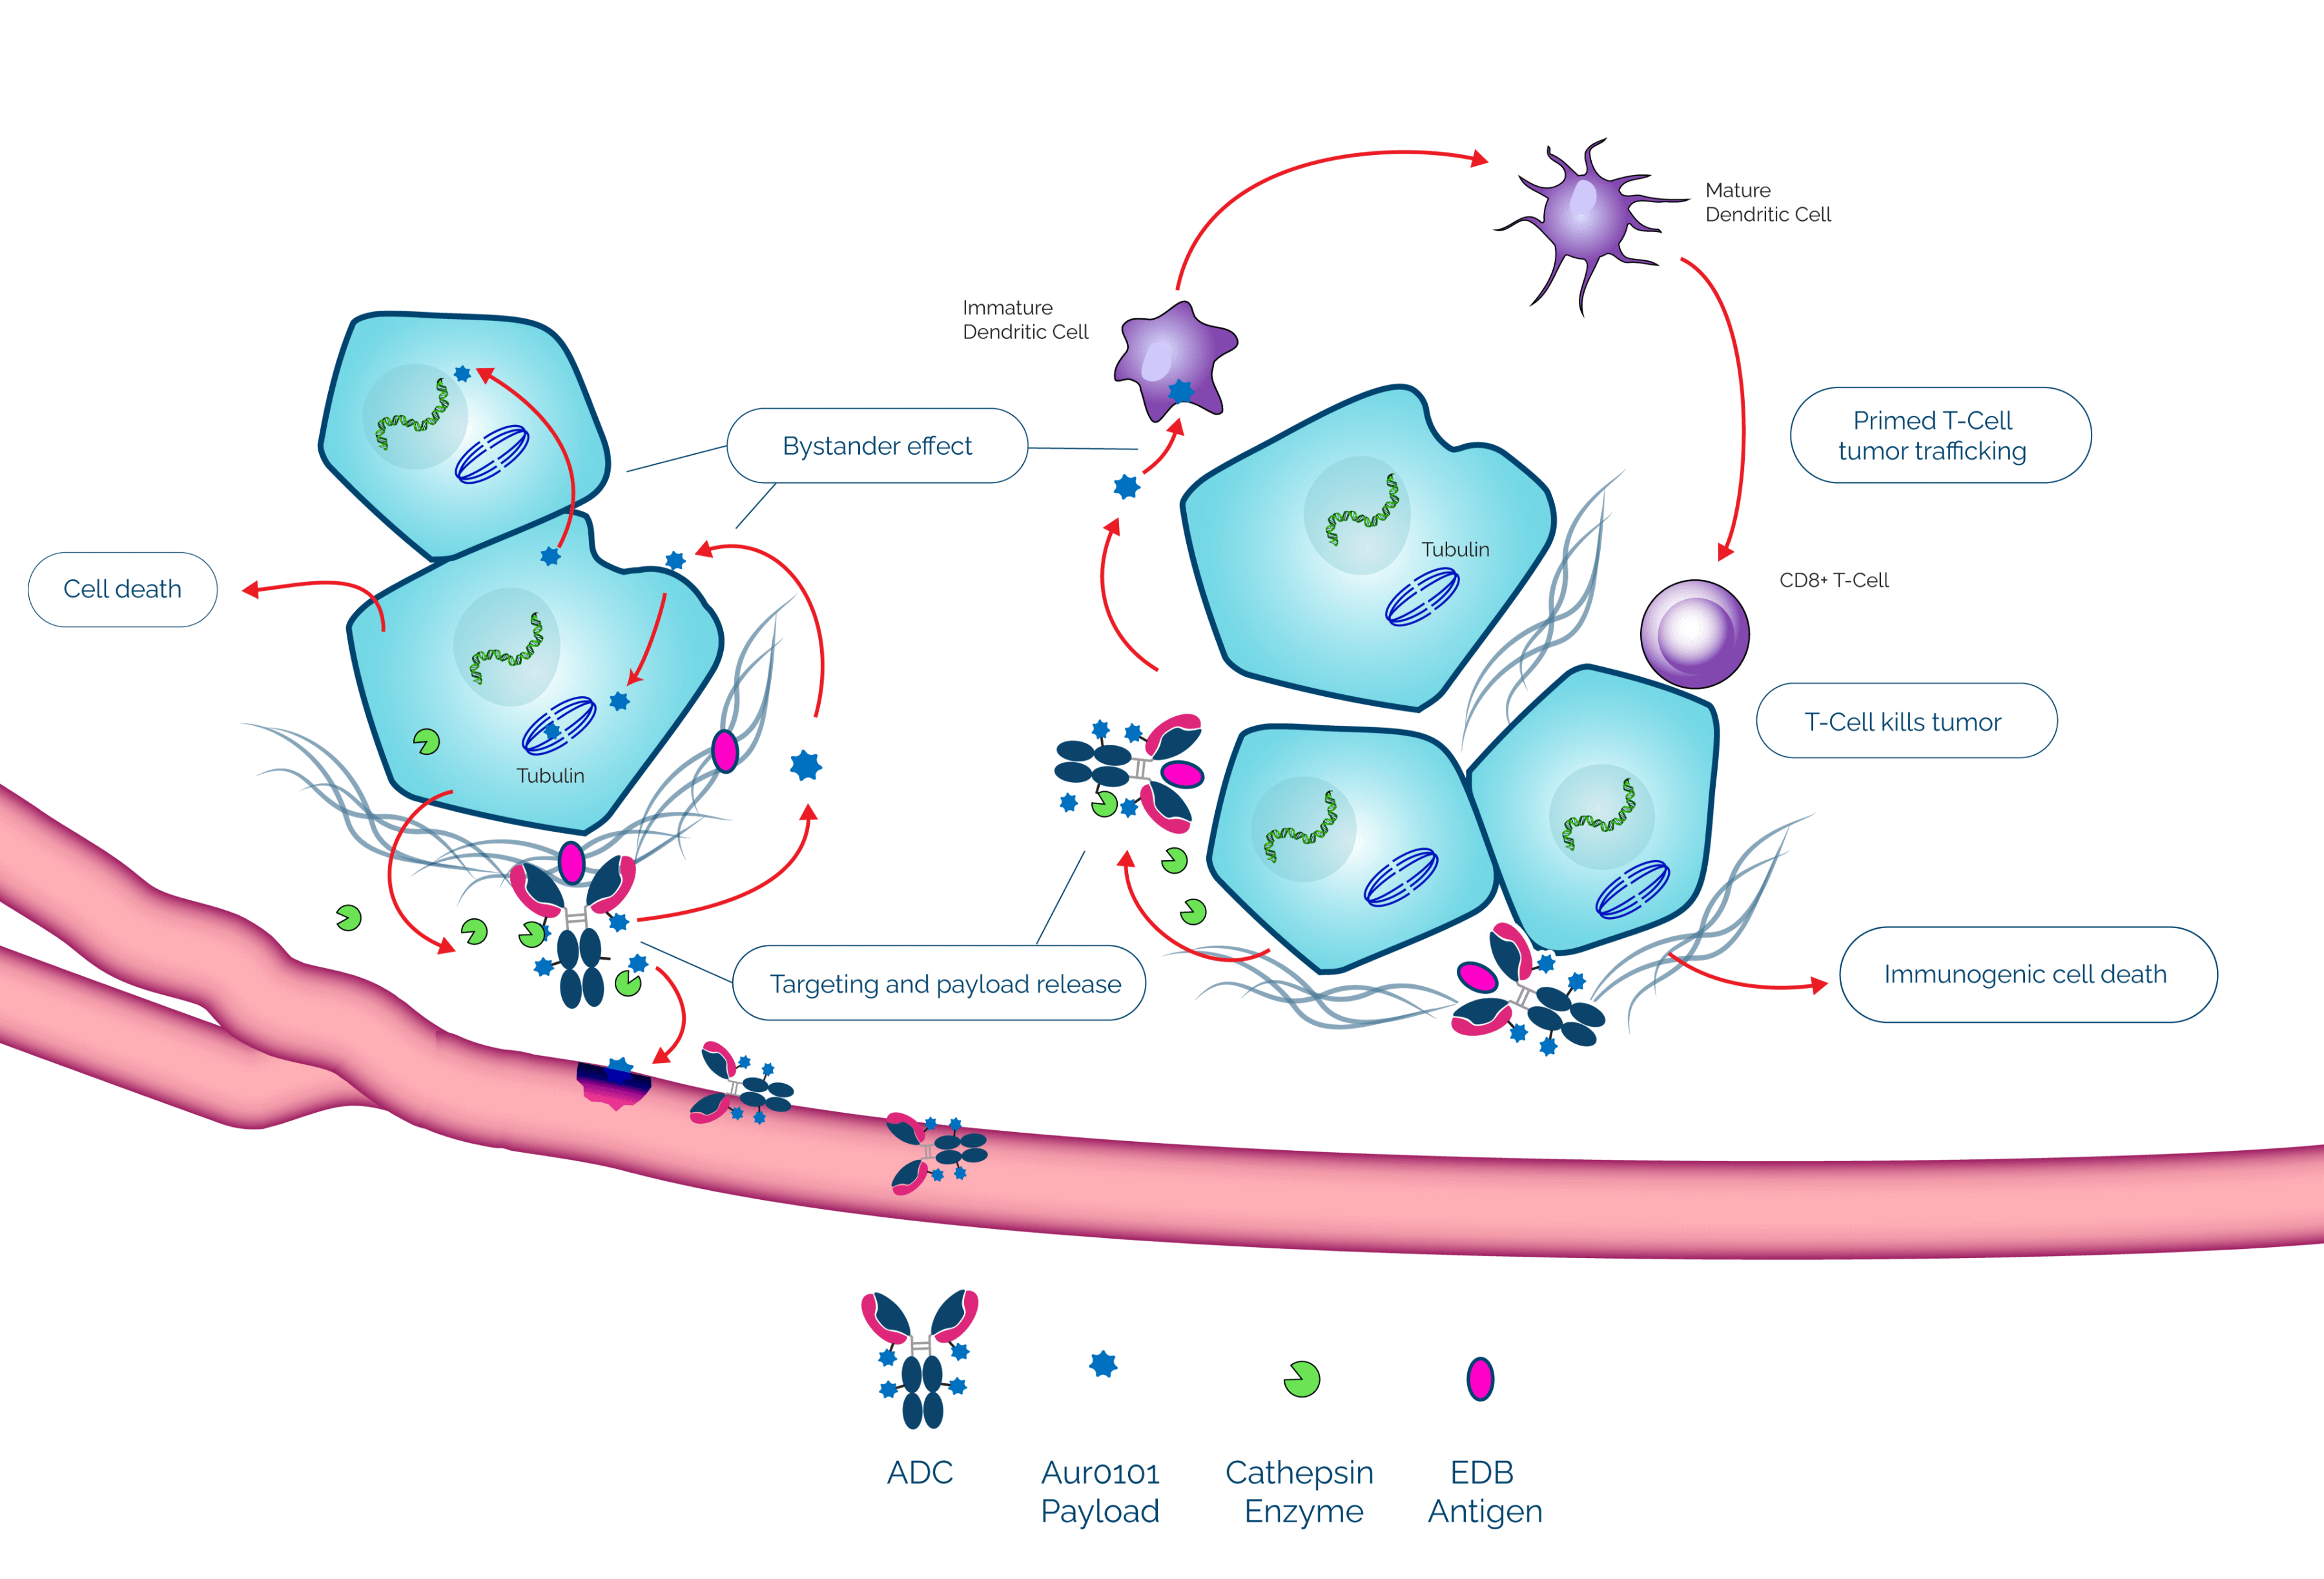 PYX-201: a promising ADC for the treatment of solid tumor